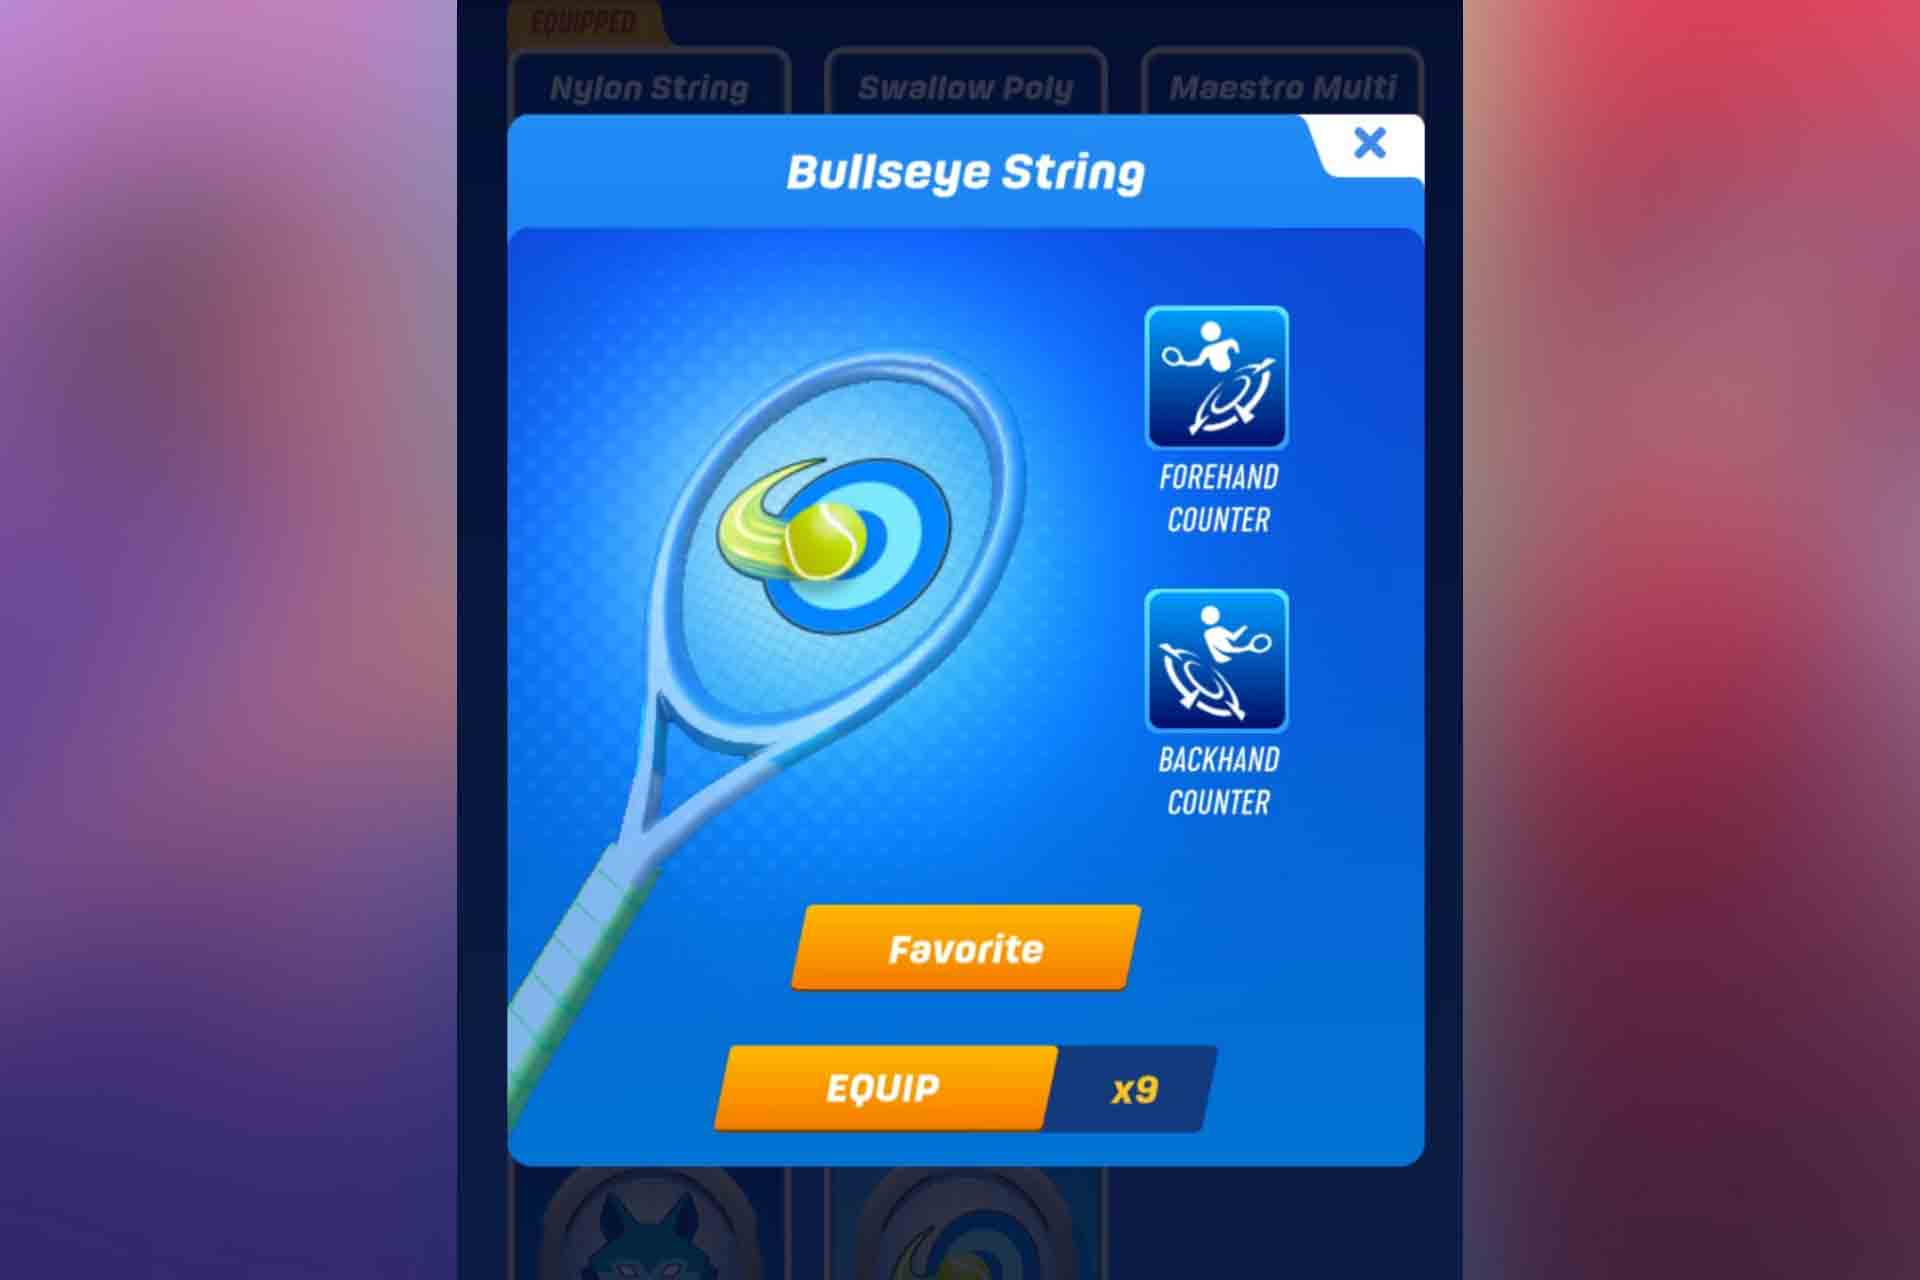 BullsEye String in Tennis Clash. It is a special type of string that is won after winning the weekly Bulls Eye challenge.